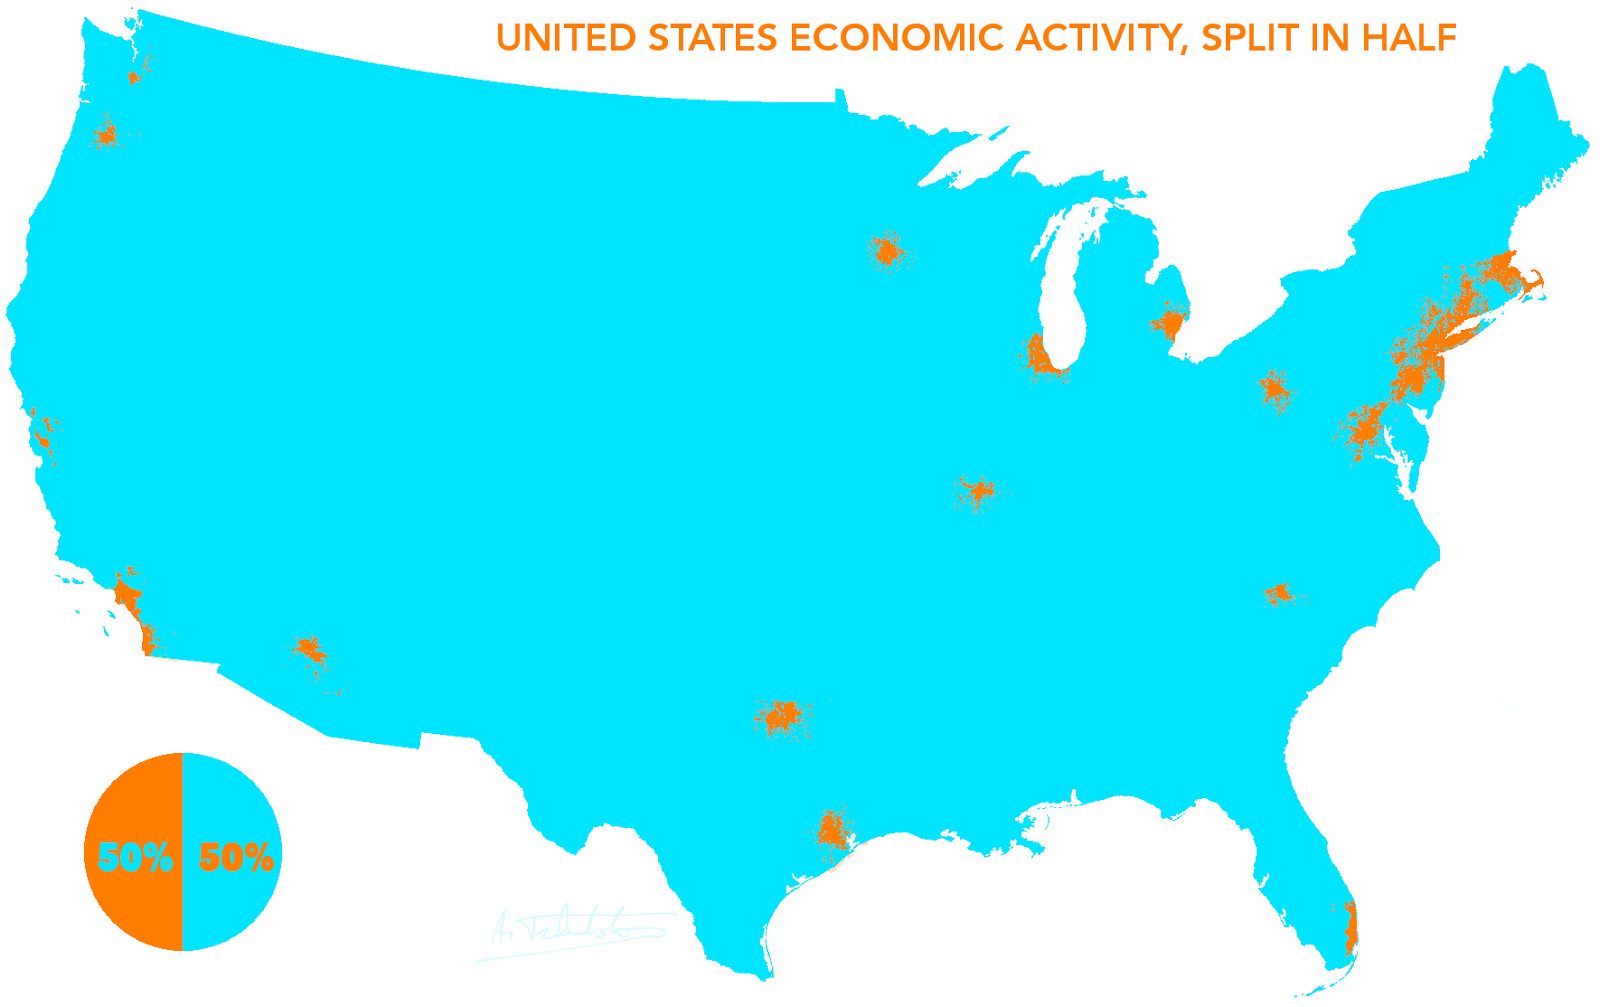 Economic activity in the United States